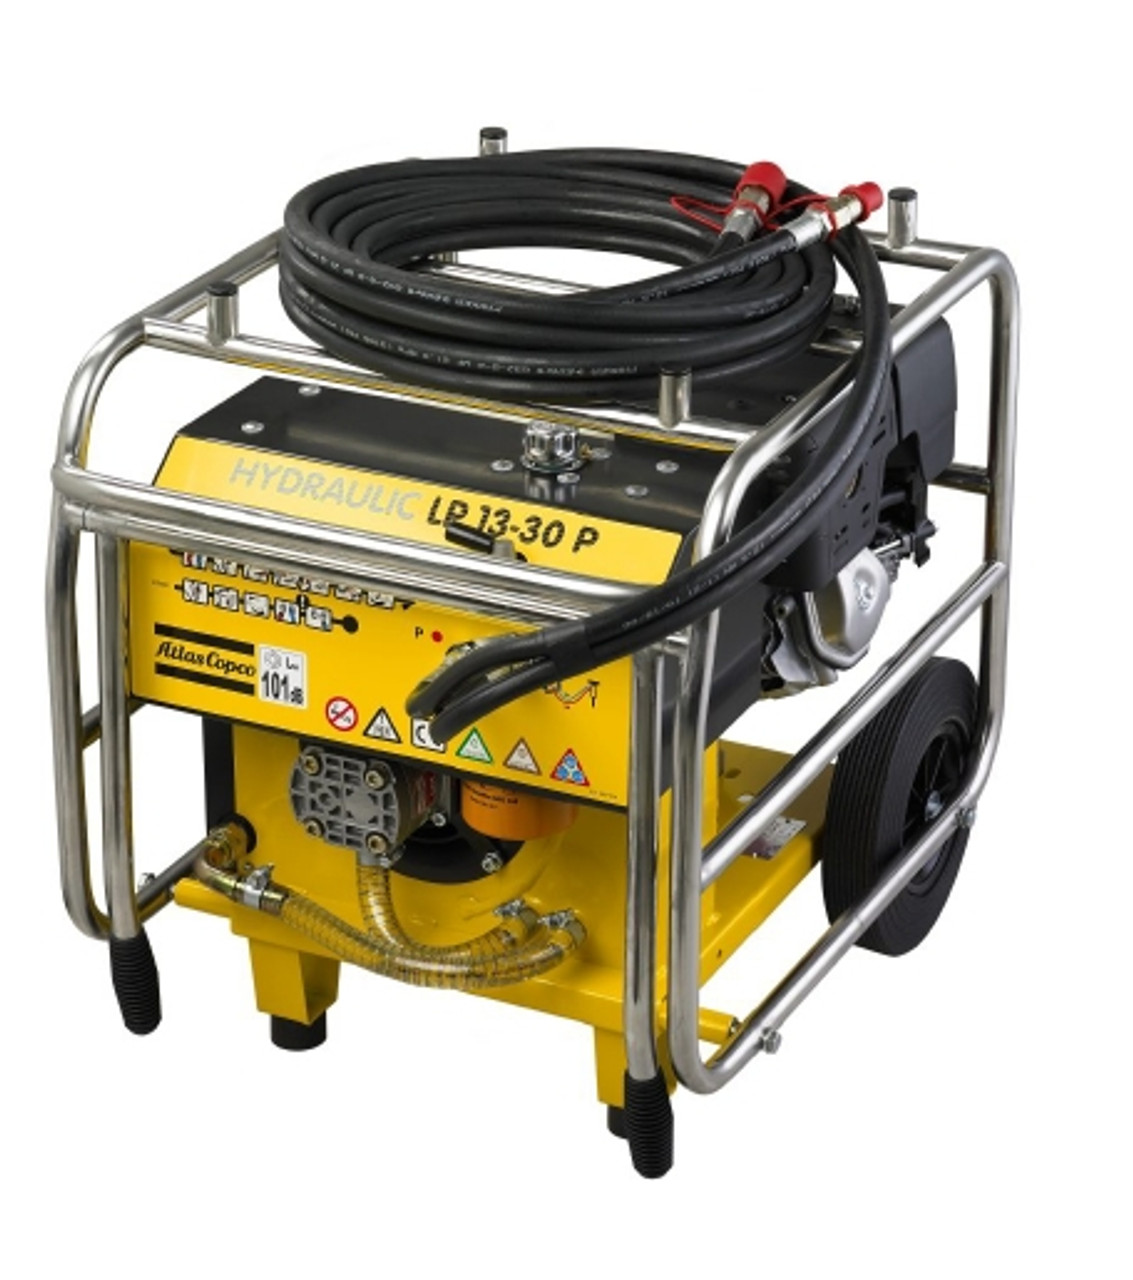 LP 13-30 P: Petrol-driven power pack, 30 lpm (8 gpm) including 7 m (23 ft) extension twin-hose.